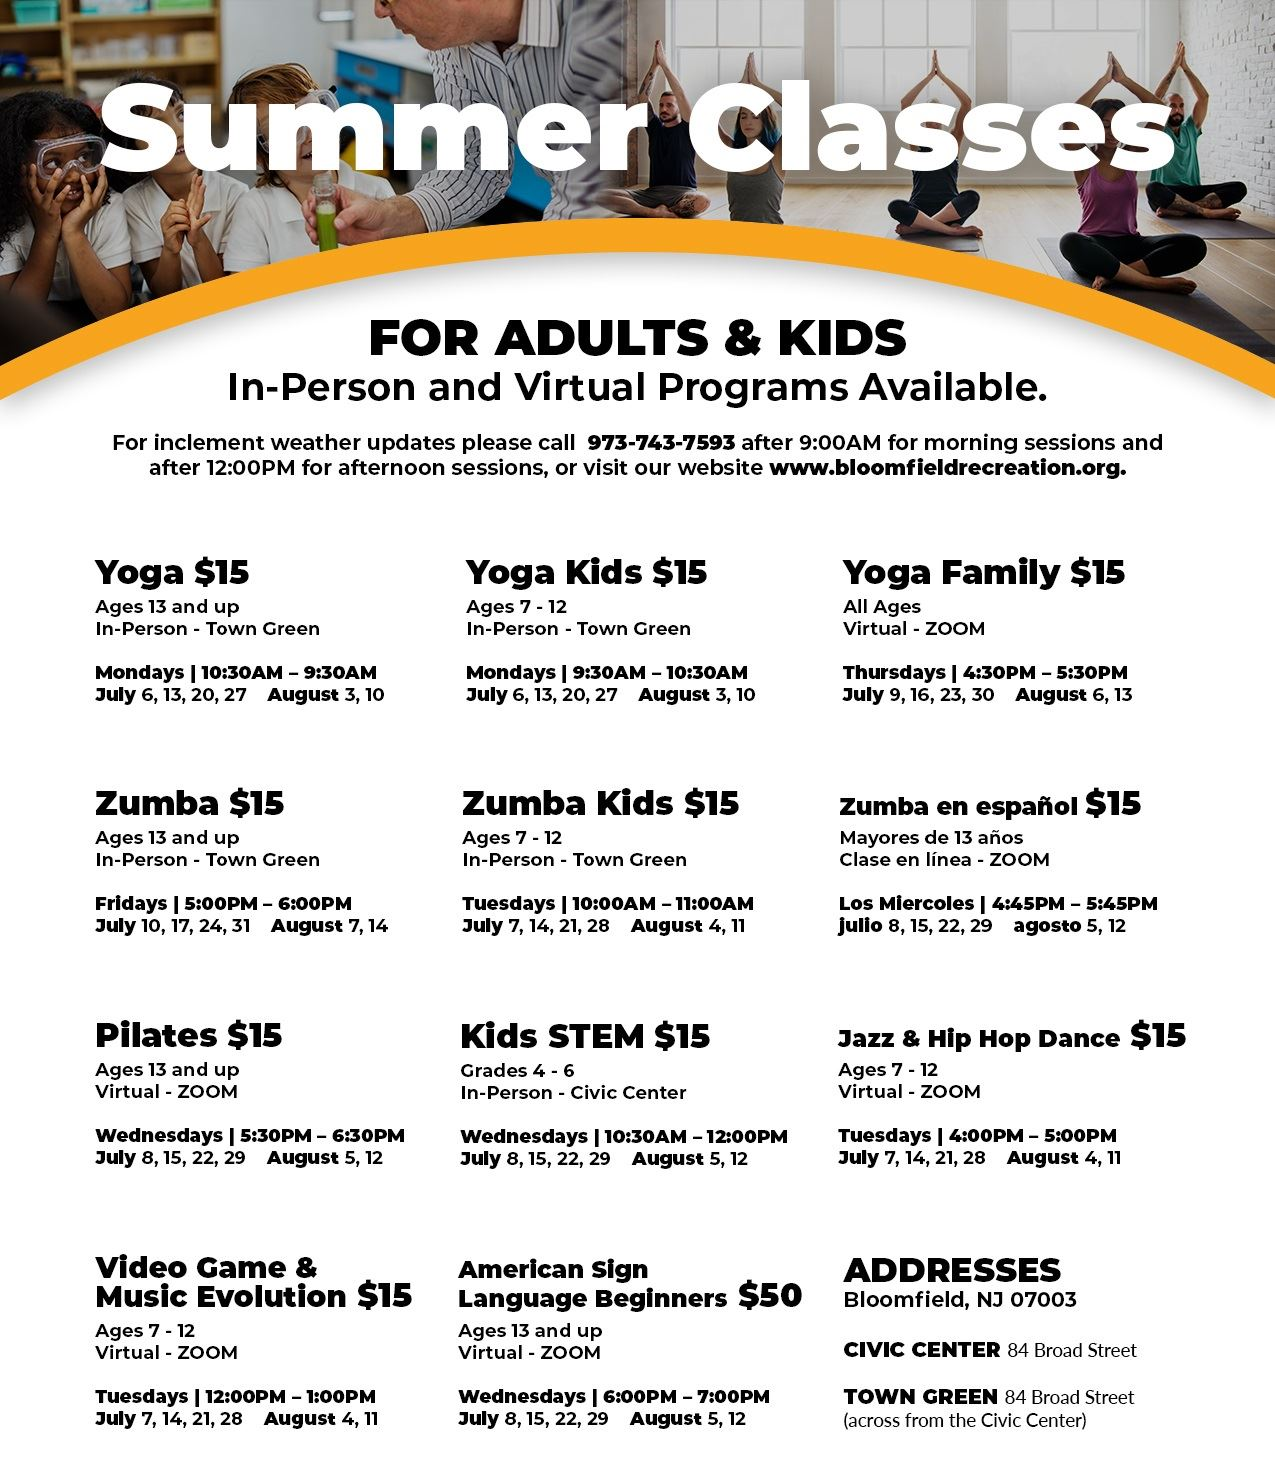 summer classes website